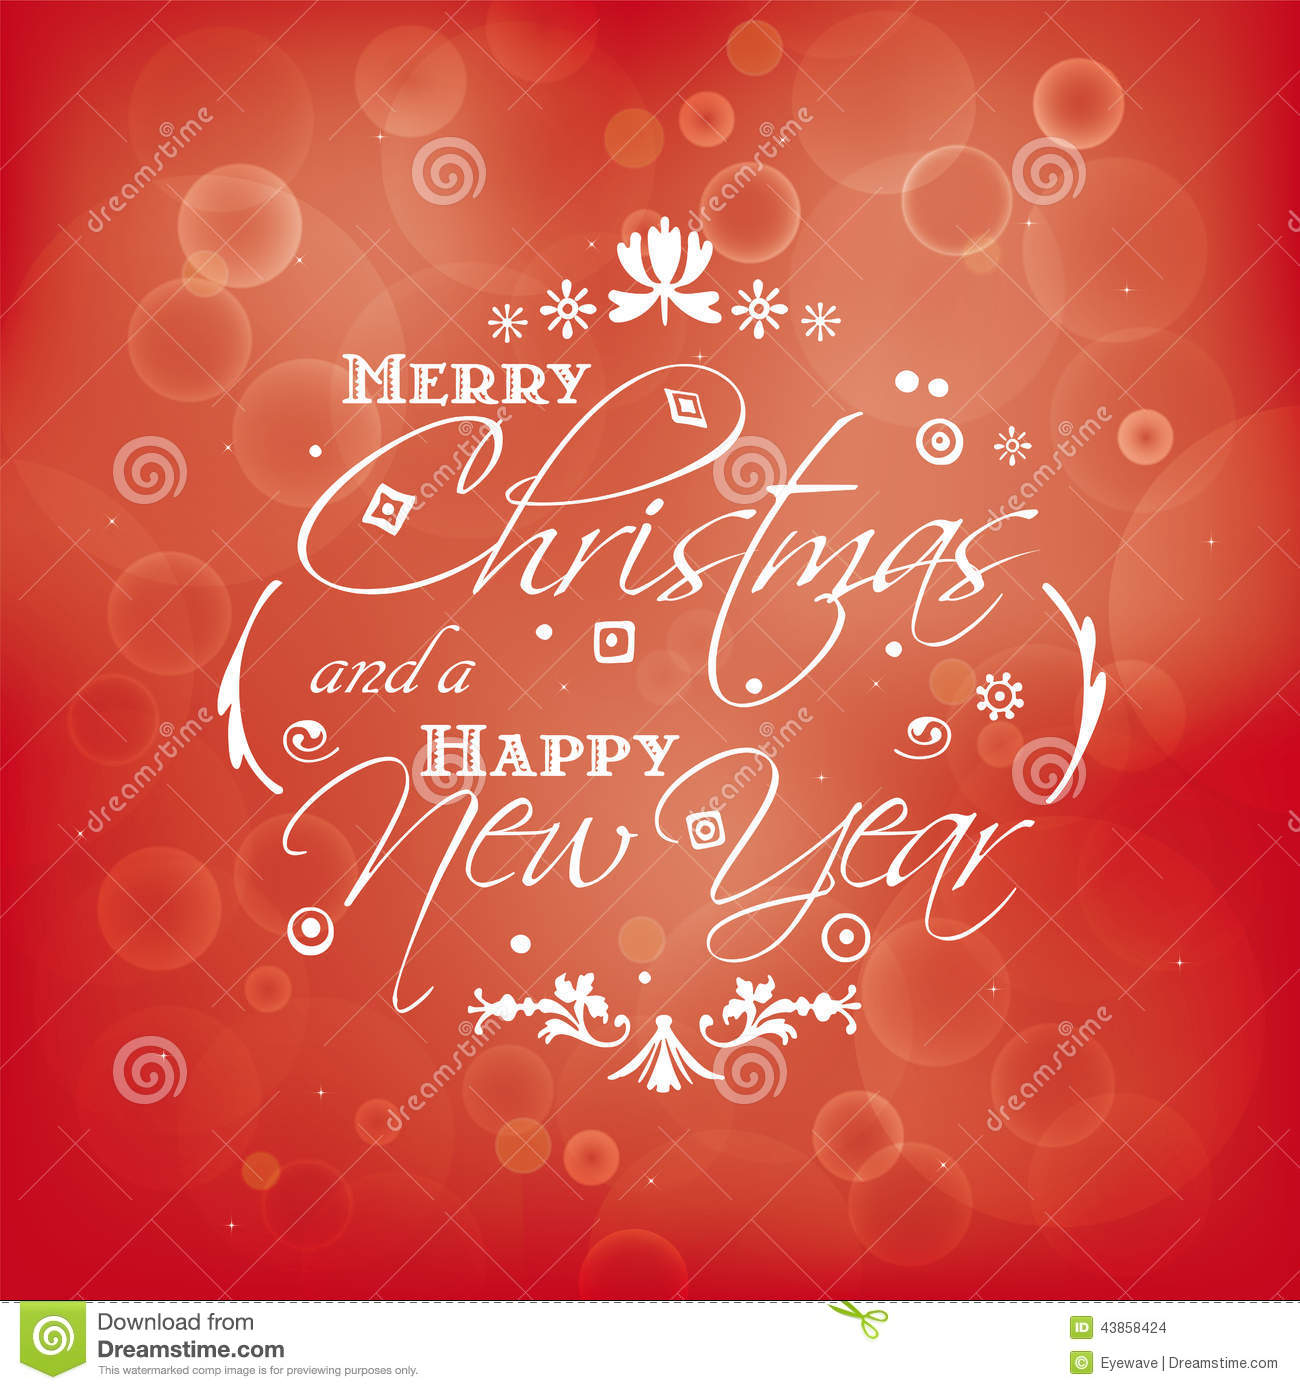 Merry christmas and happy new year card design with bokeh effect merry christmas and happy new year card design with bokeh effect lettering focus kristyandbryce Choice Image